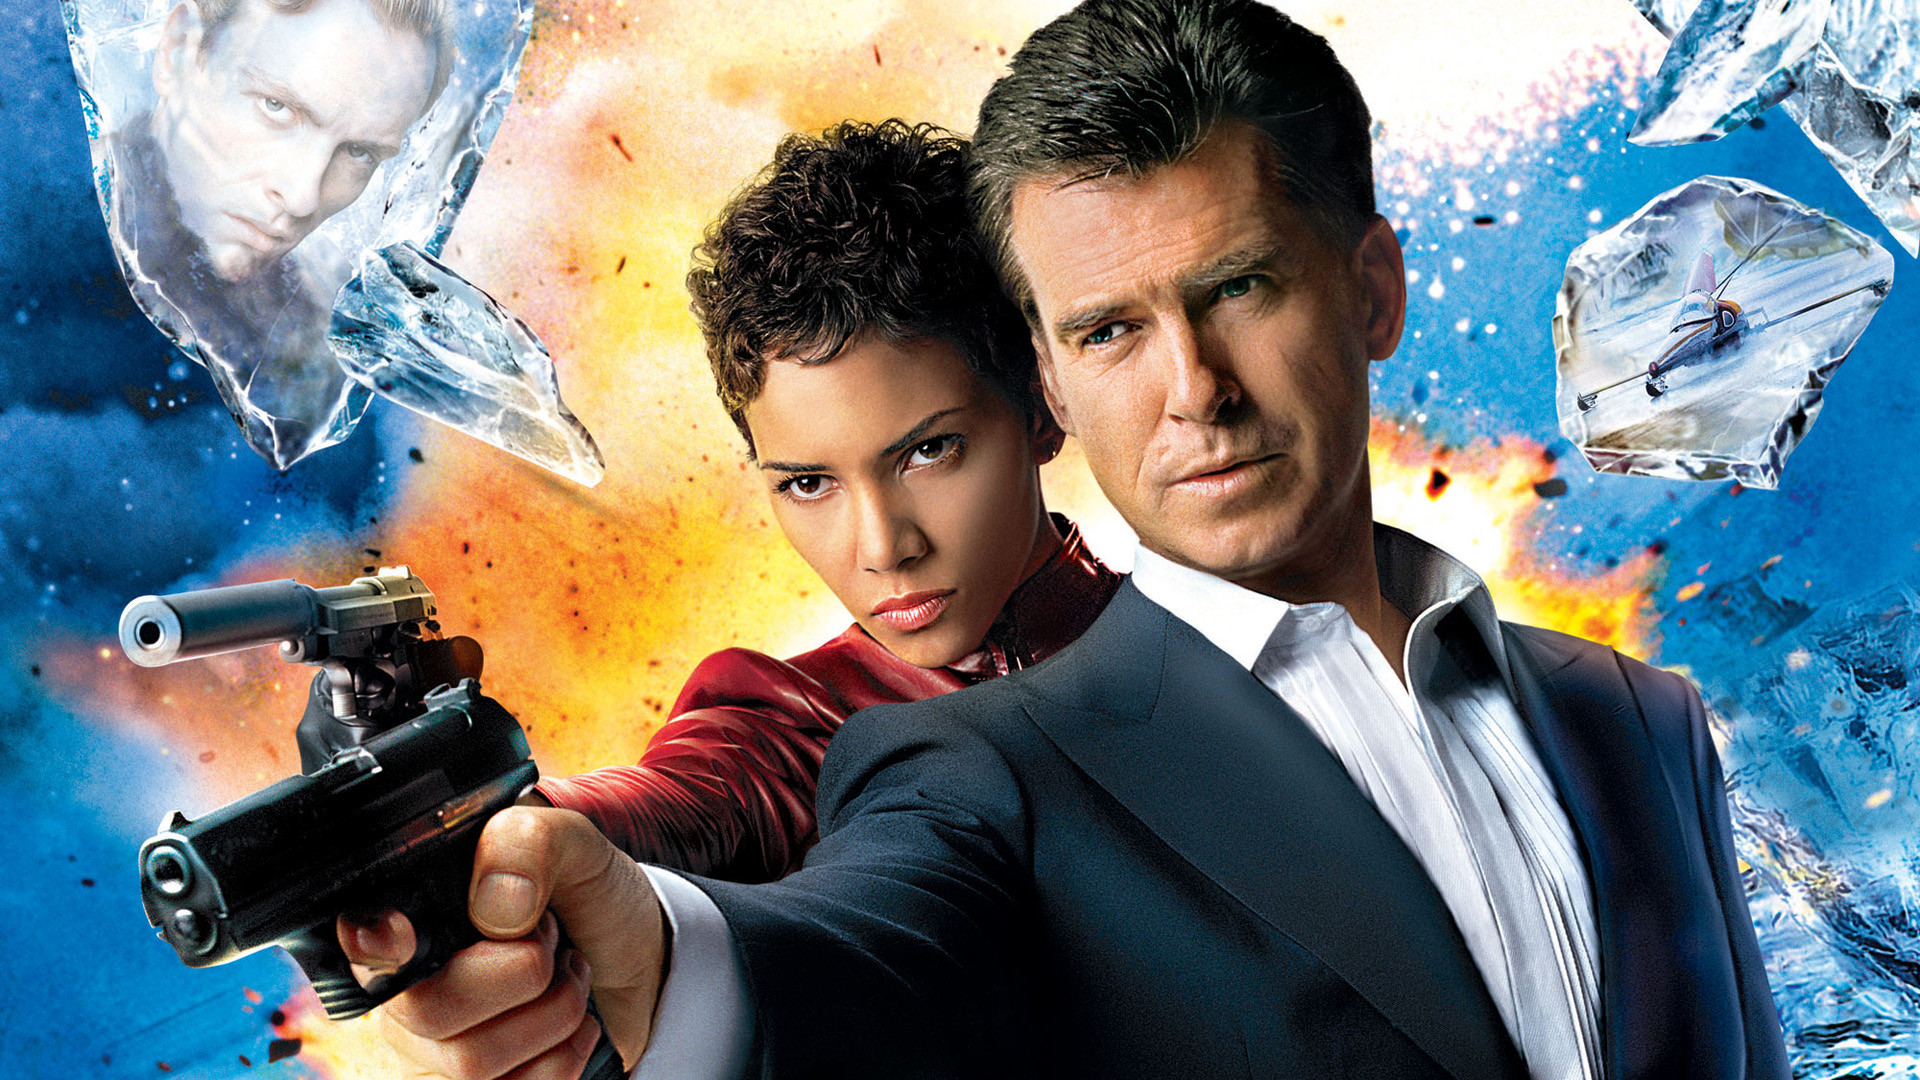 die-another-day-poster.jpg